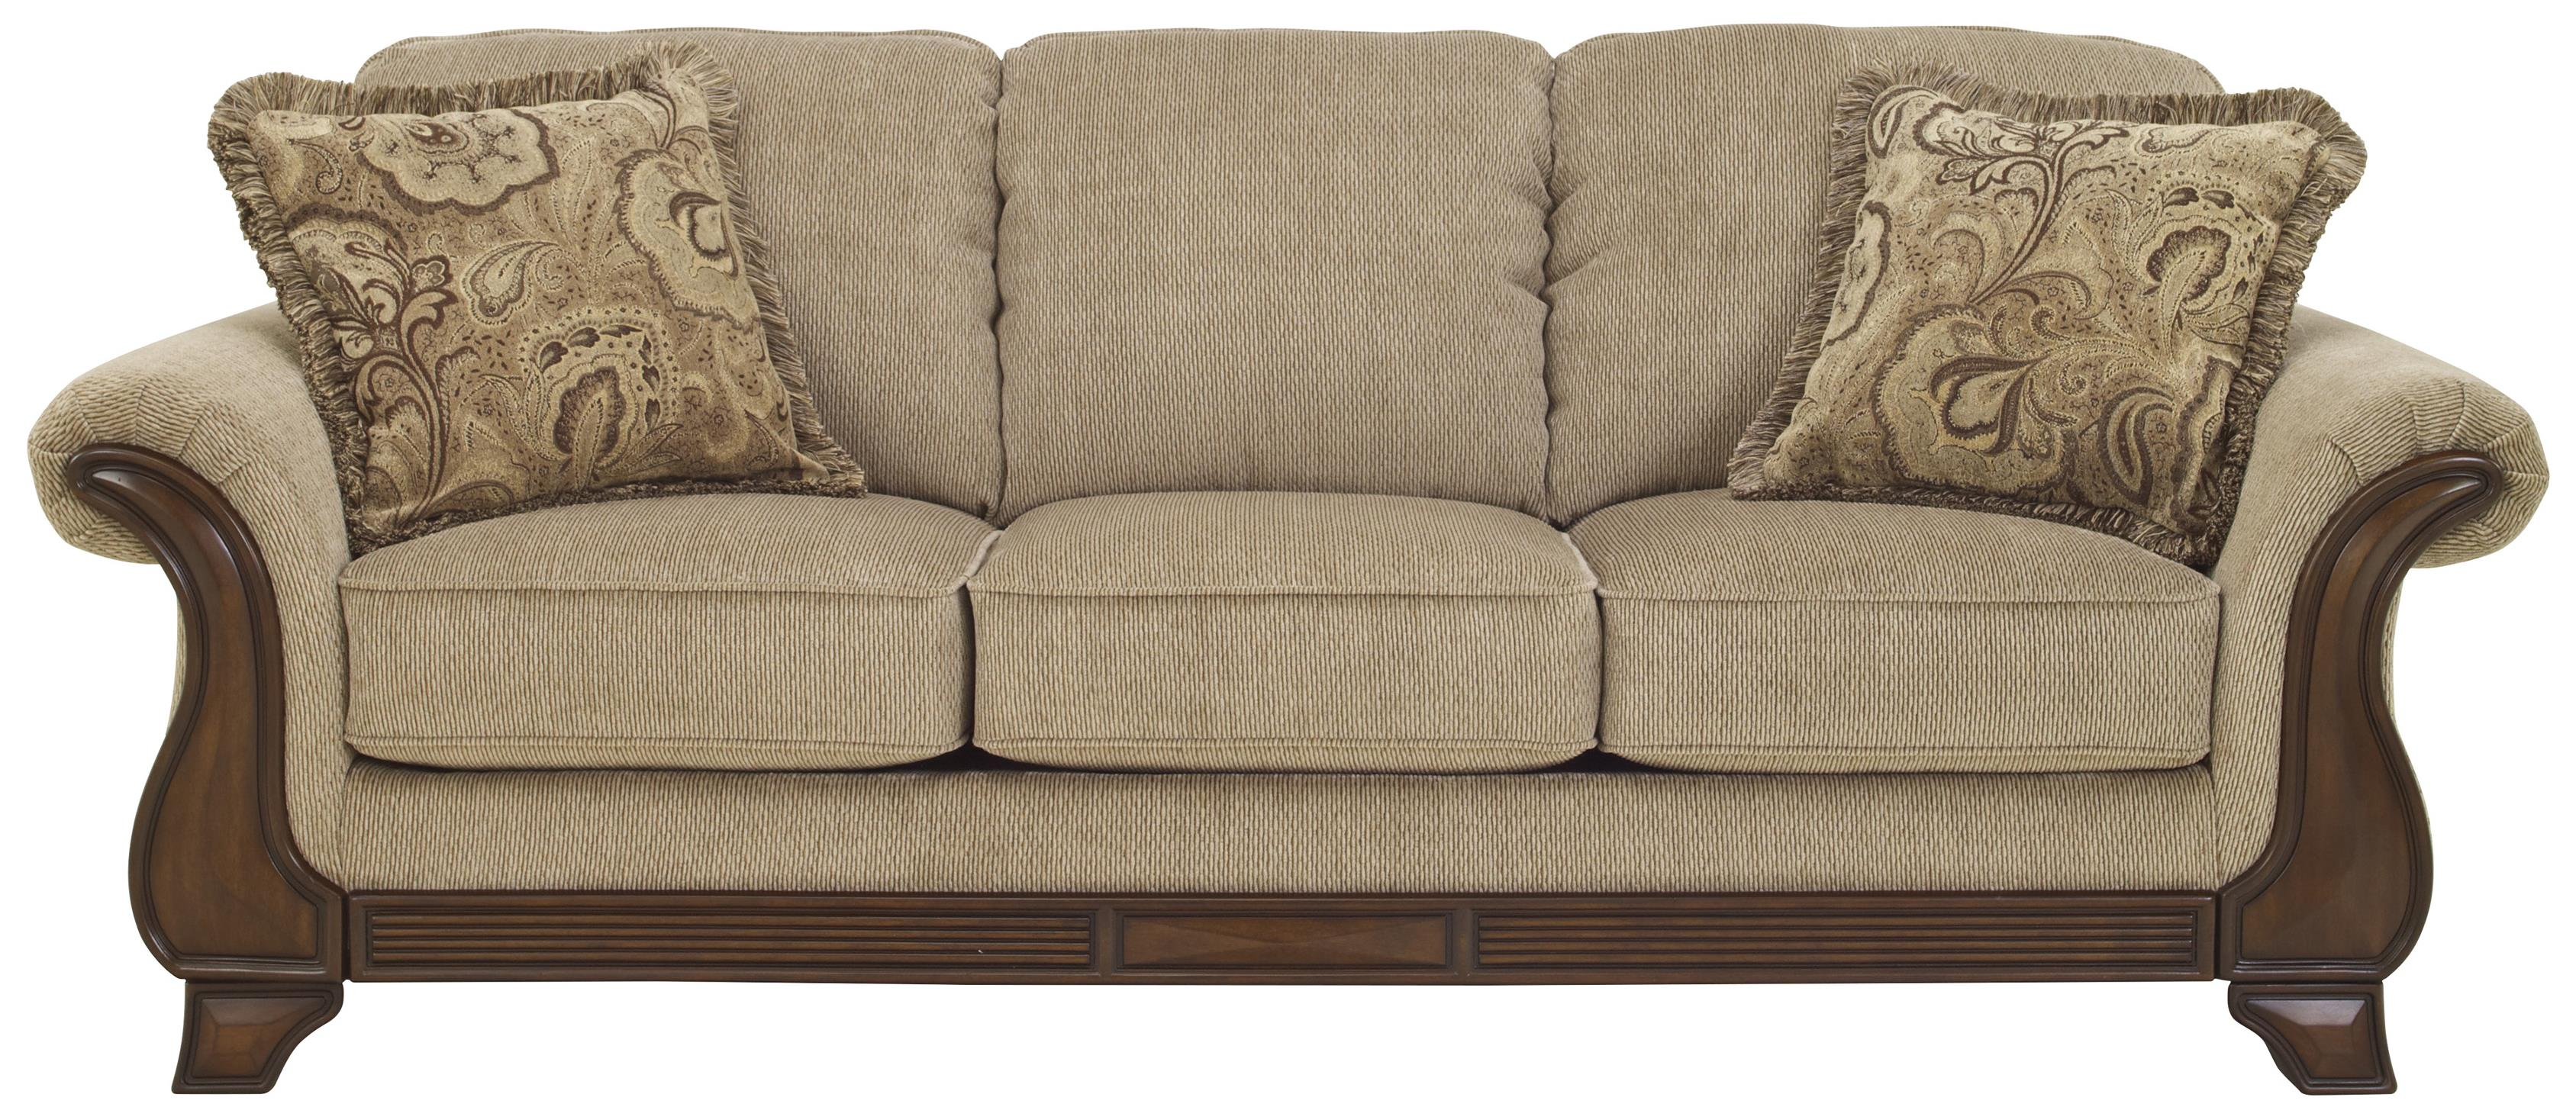 Exceptional Signature Design By Ashley Lanett Sofa   Item Number: 4490038